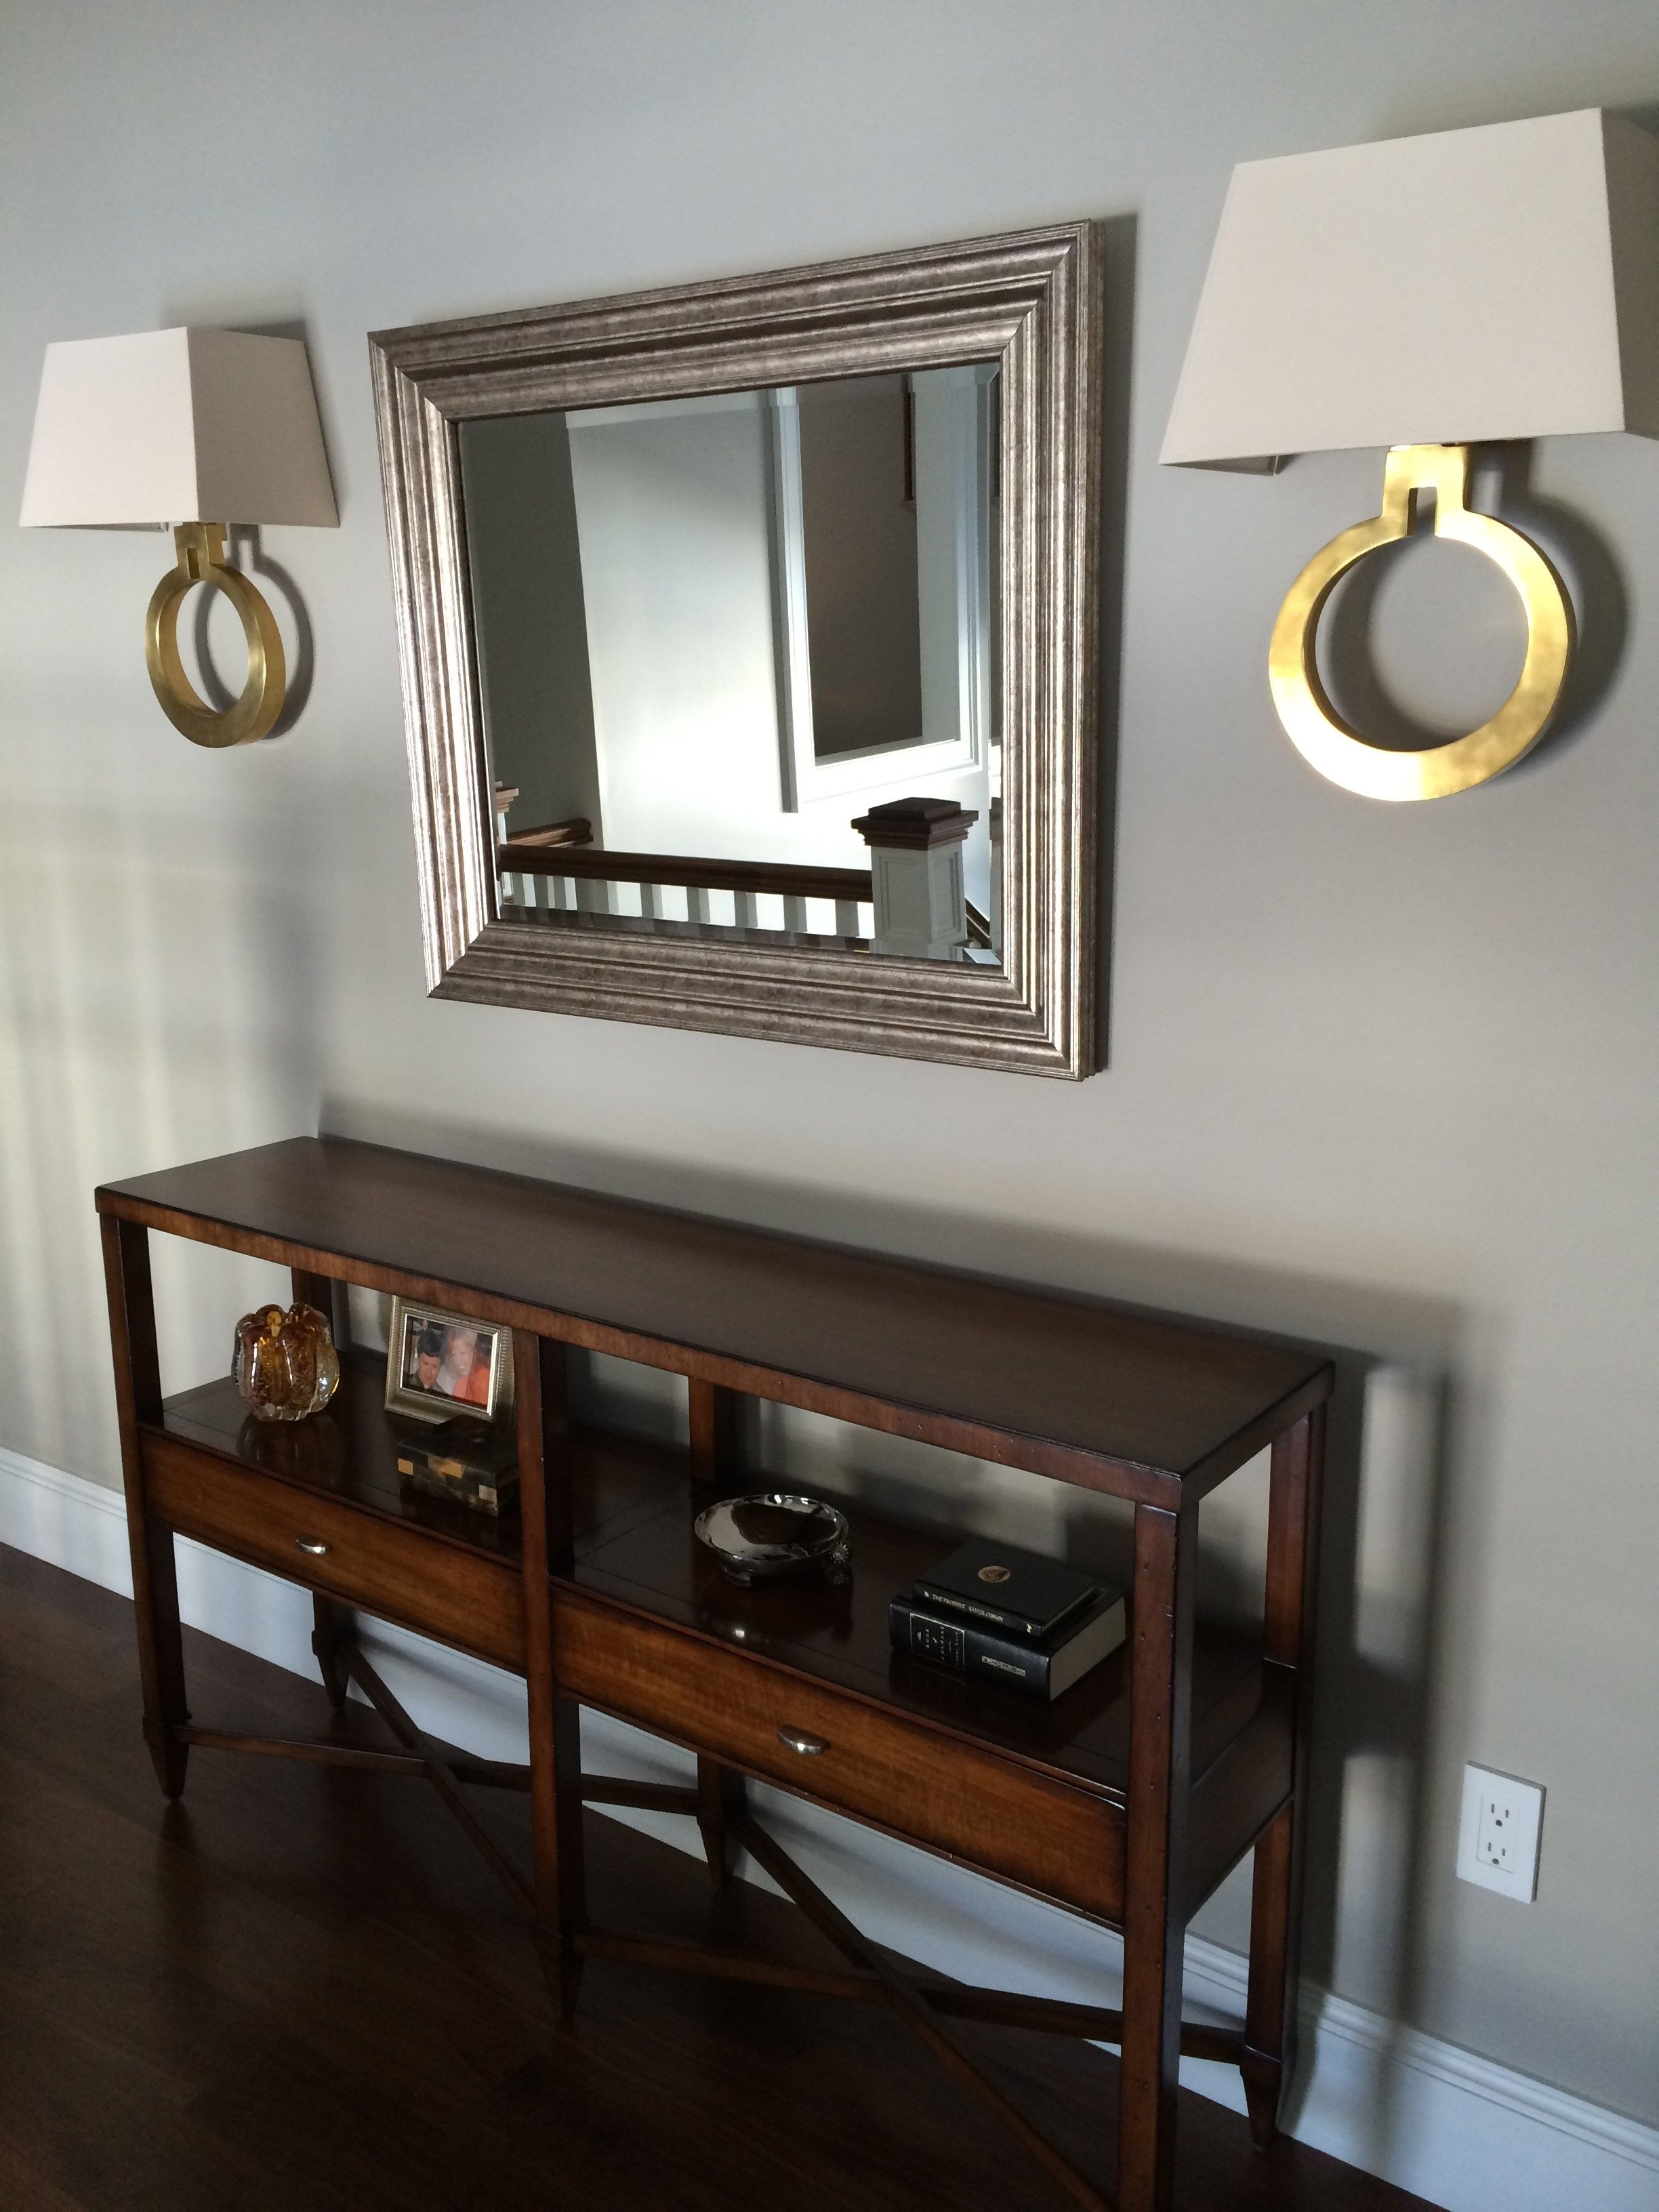 Visual Comfort Ring Form Wall Sconces Used Over A Console Table. Portland,  Maine